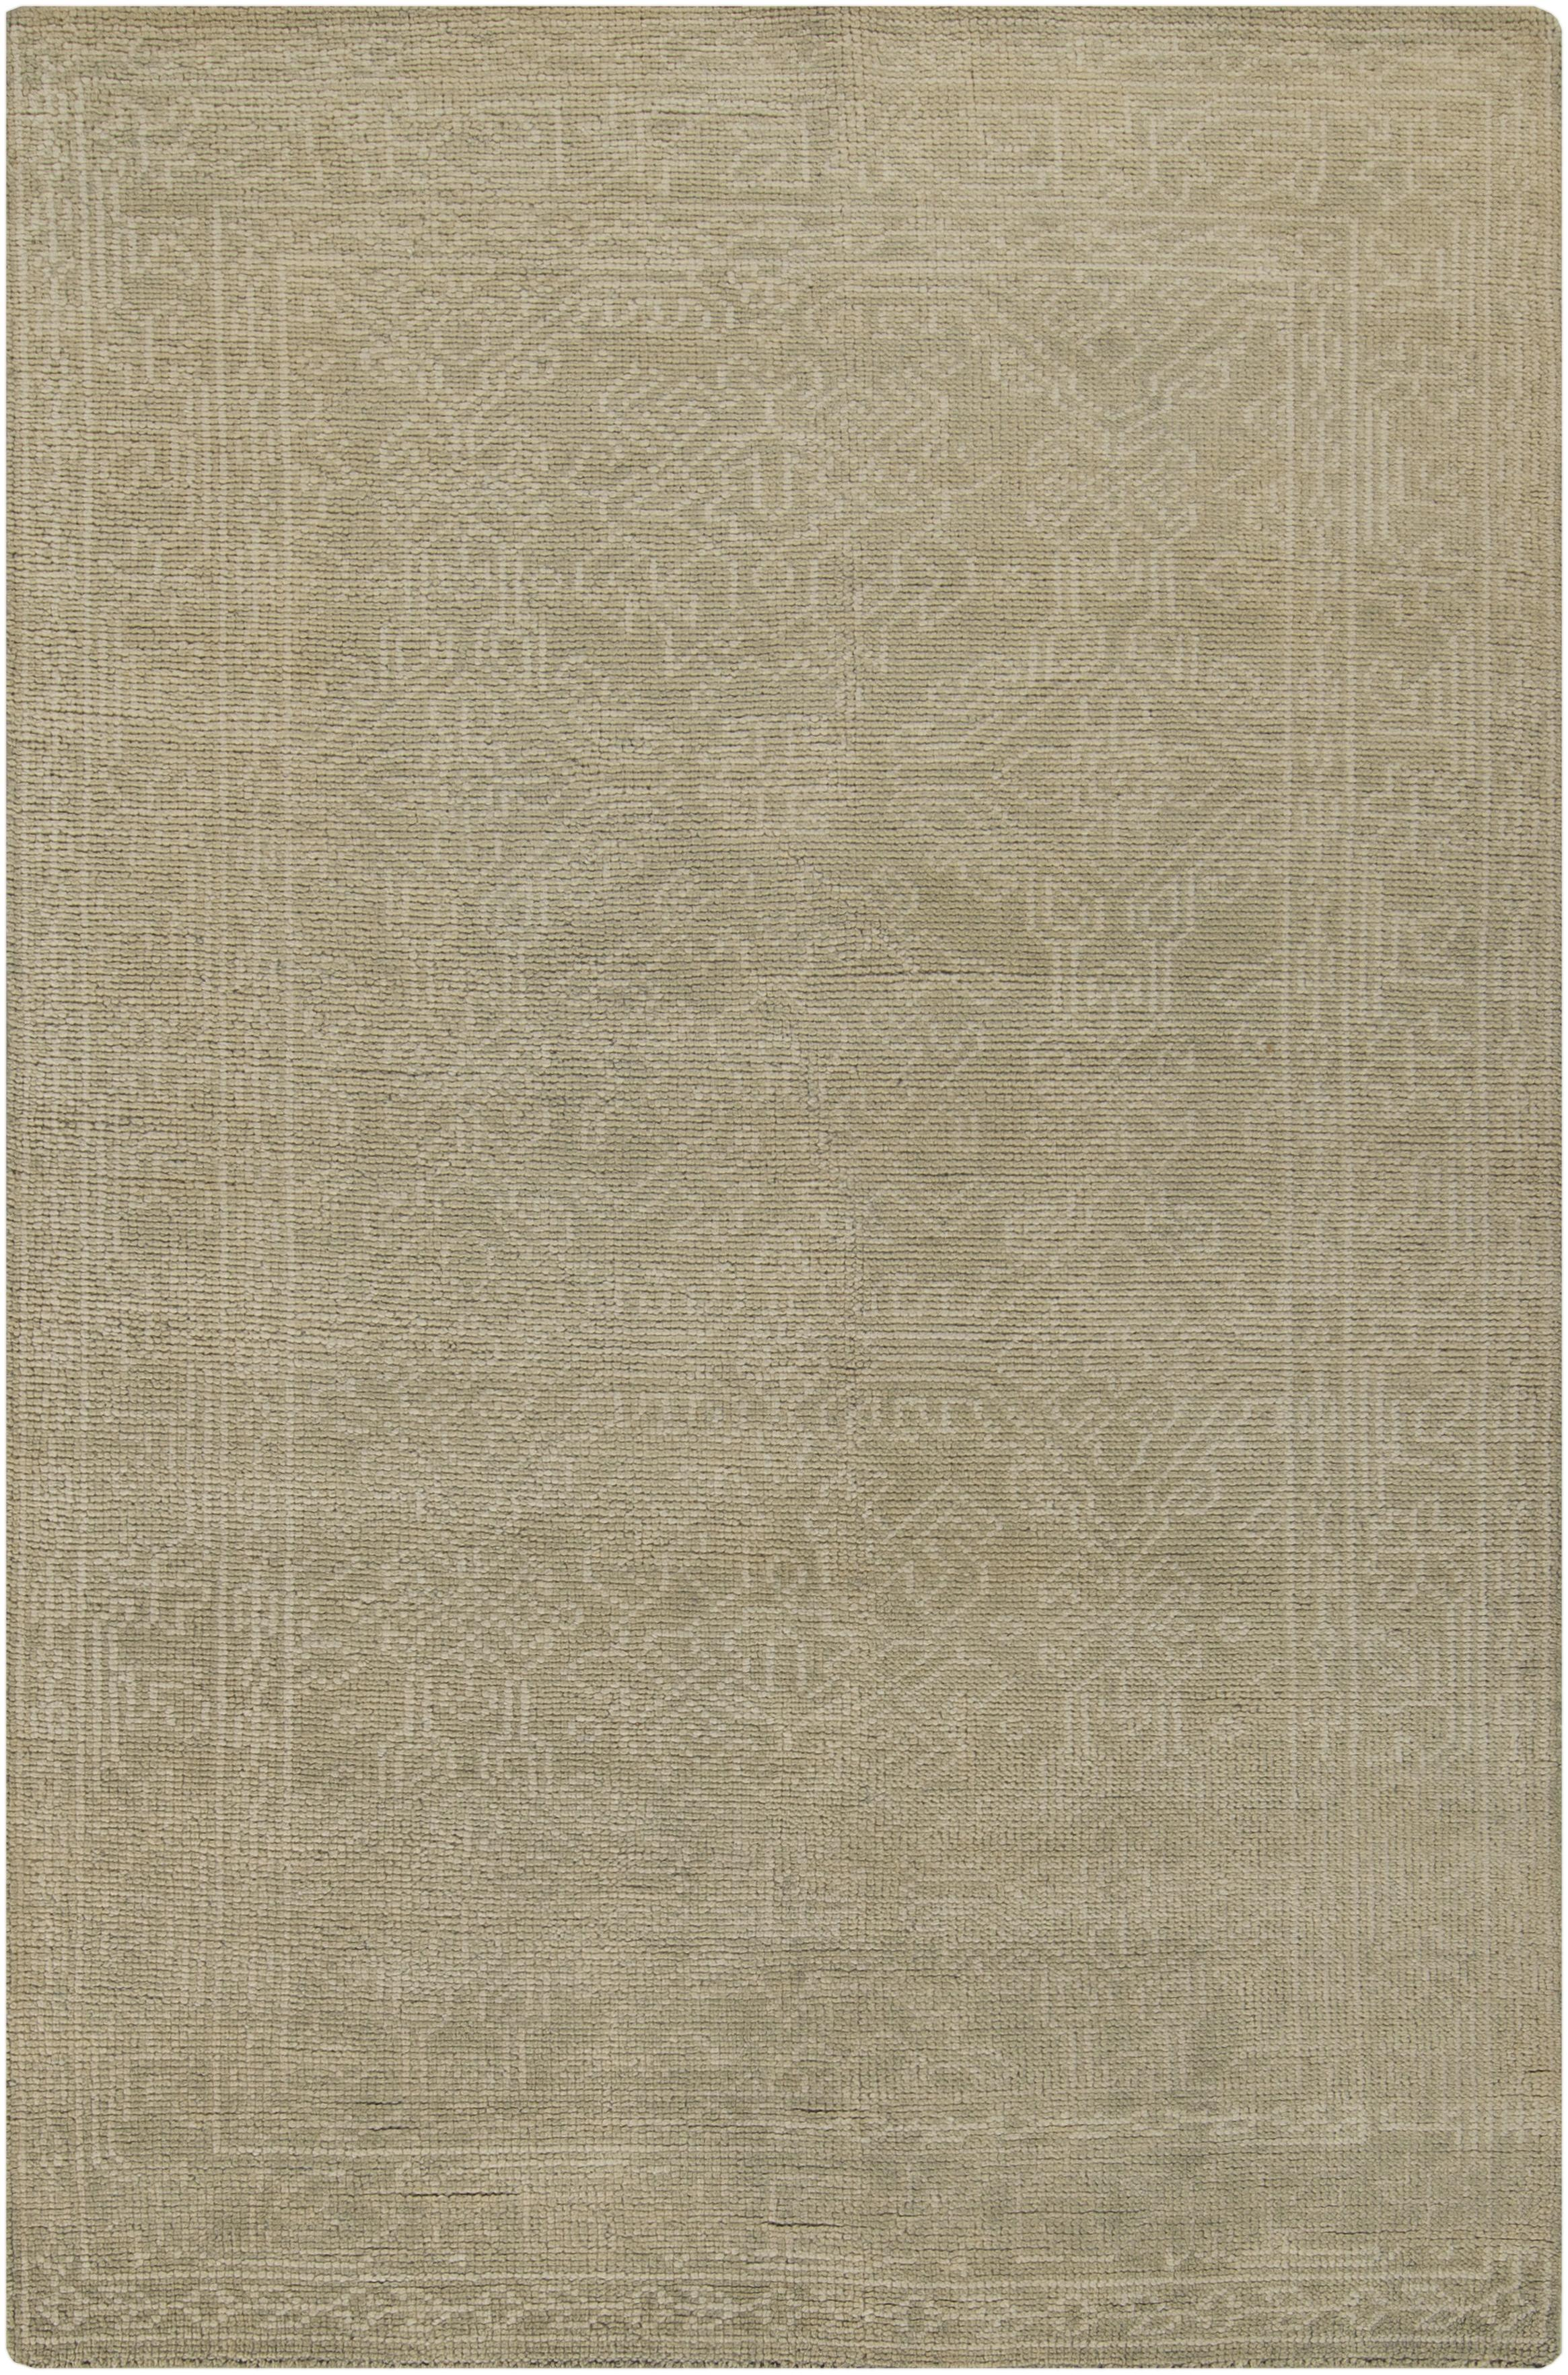 "Surya Rugs Haven 3'6"" x 5'6"" - Item Number: HVN1215-3656"